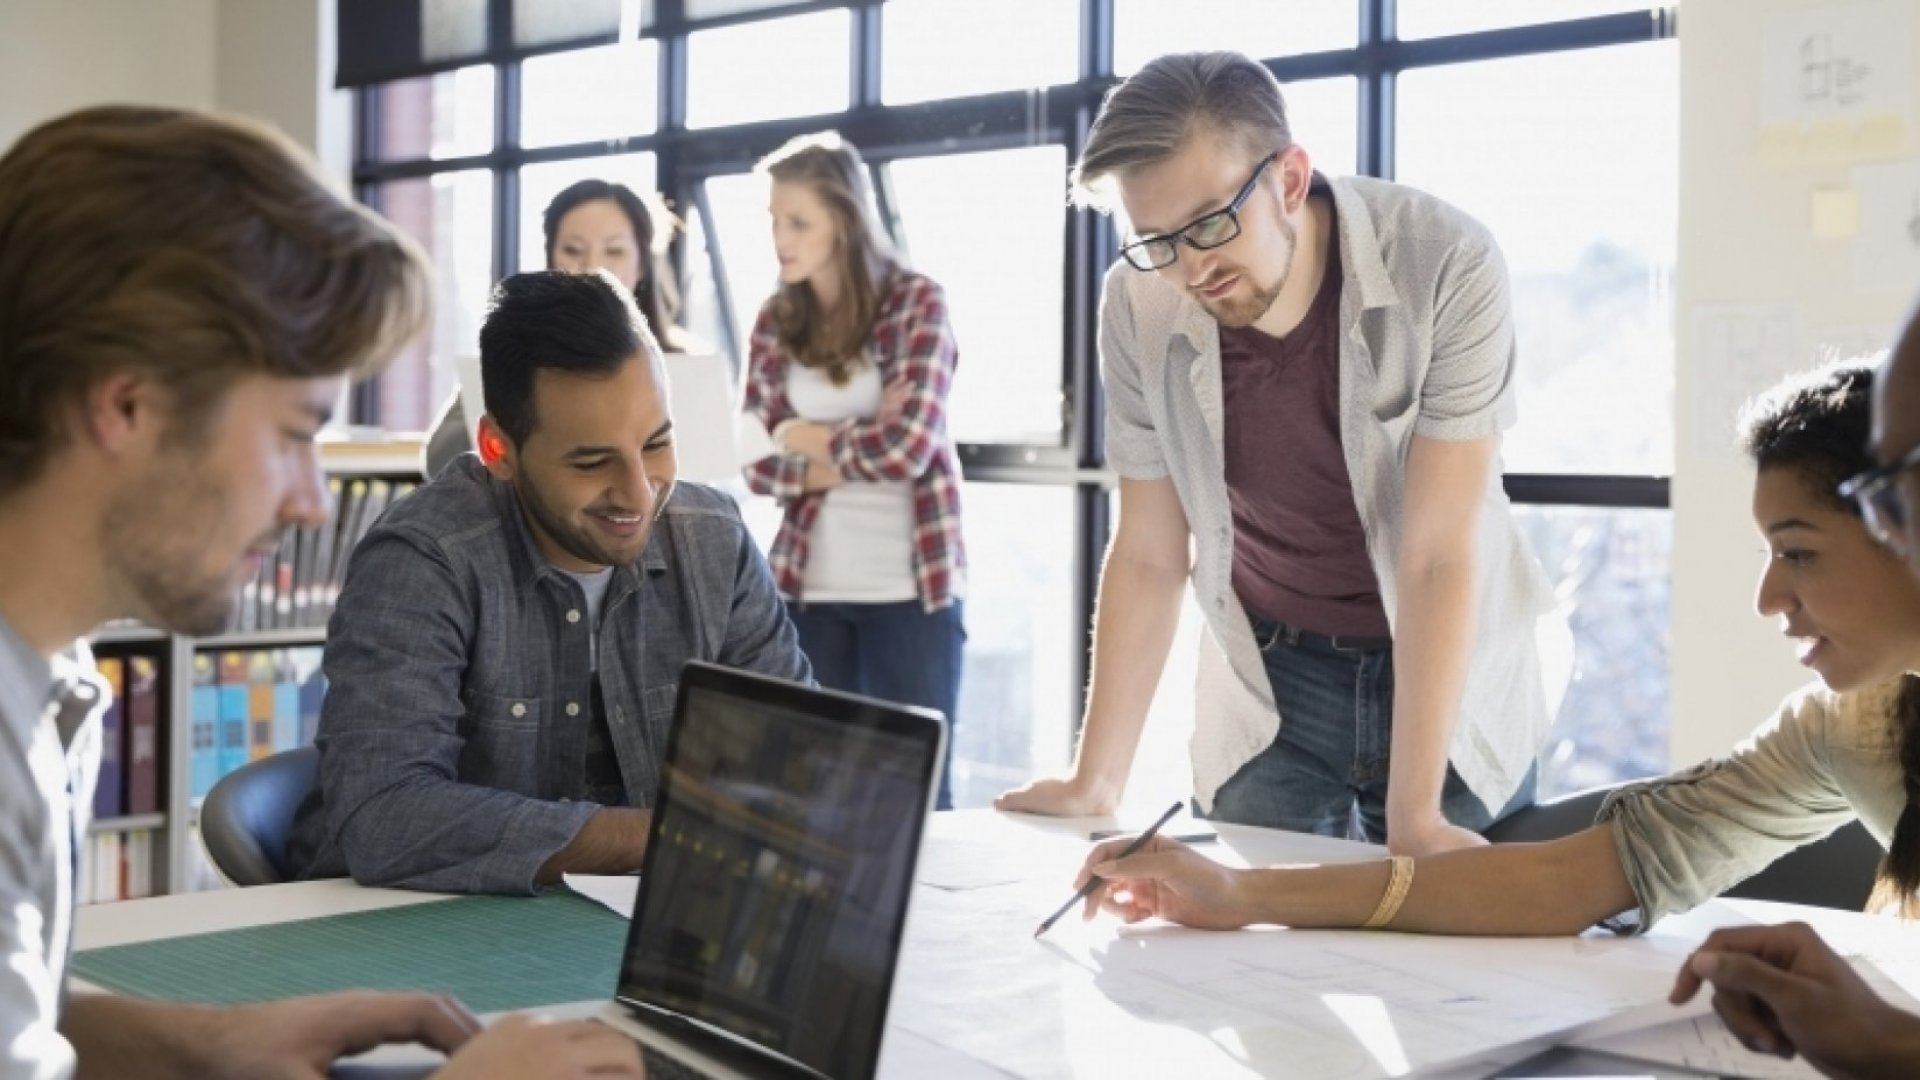 How to Create and Nurture a Positive Workplace